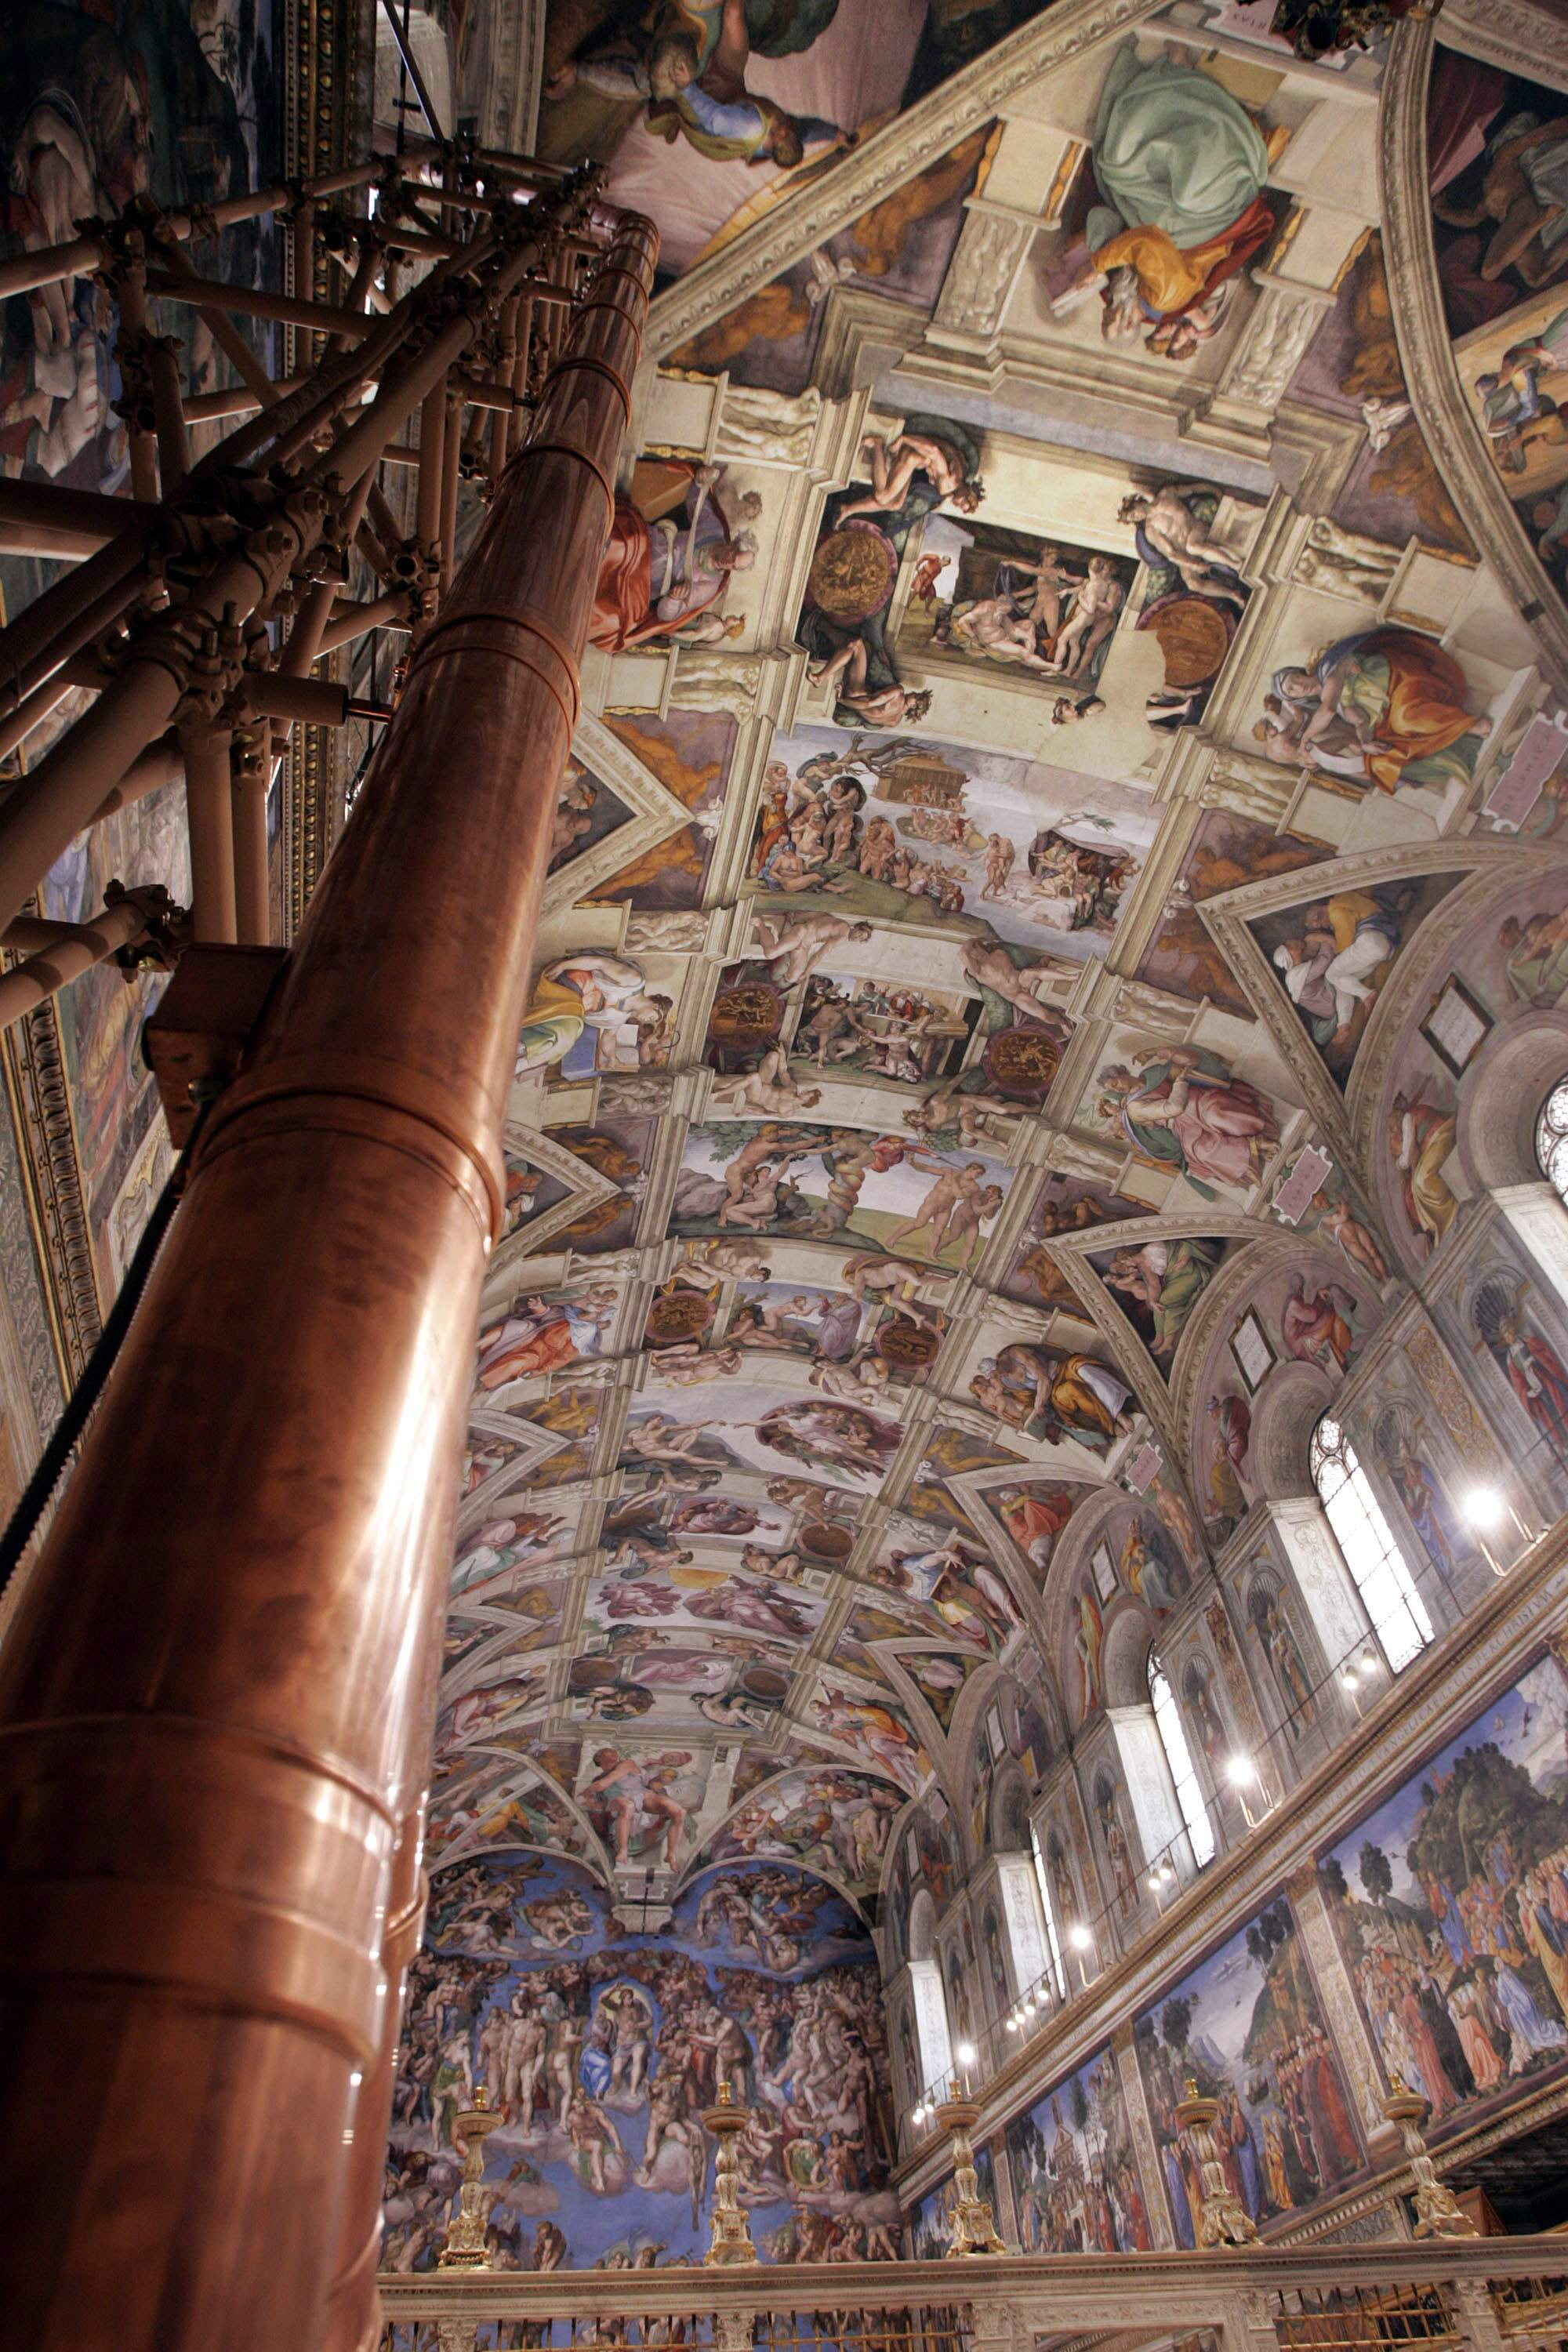 Conclave stovepipe, Michelangelo's frescoes seen in 2005 file photo of Sistine Chapel